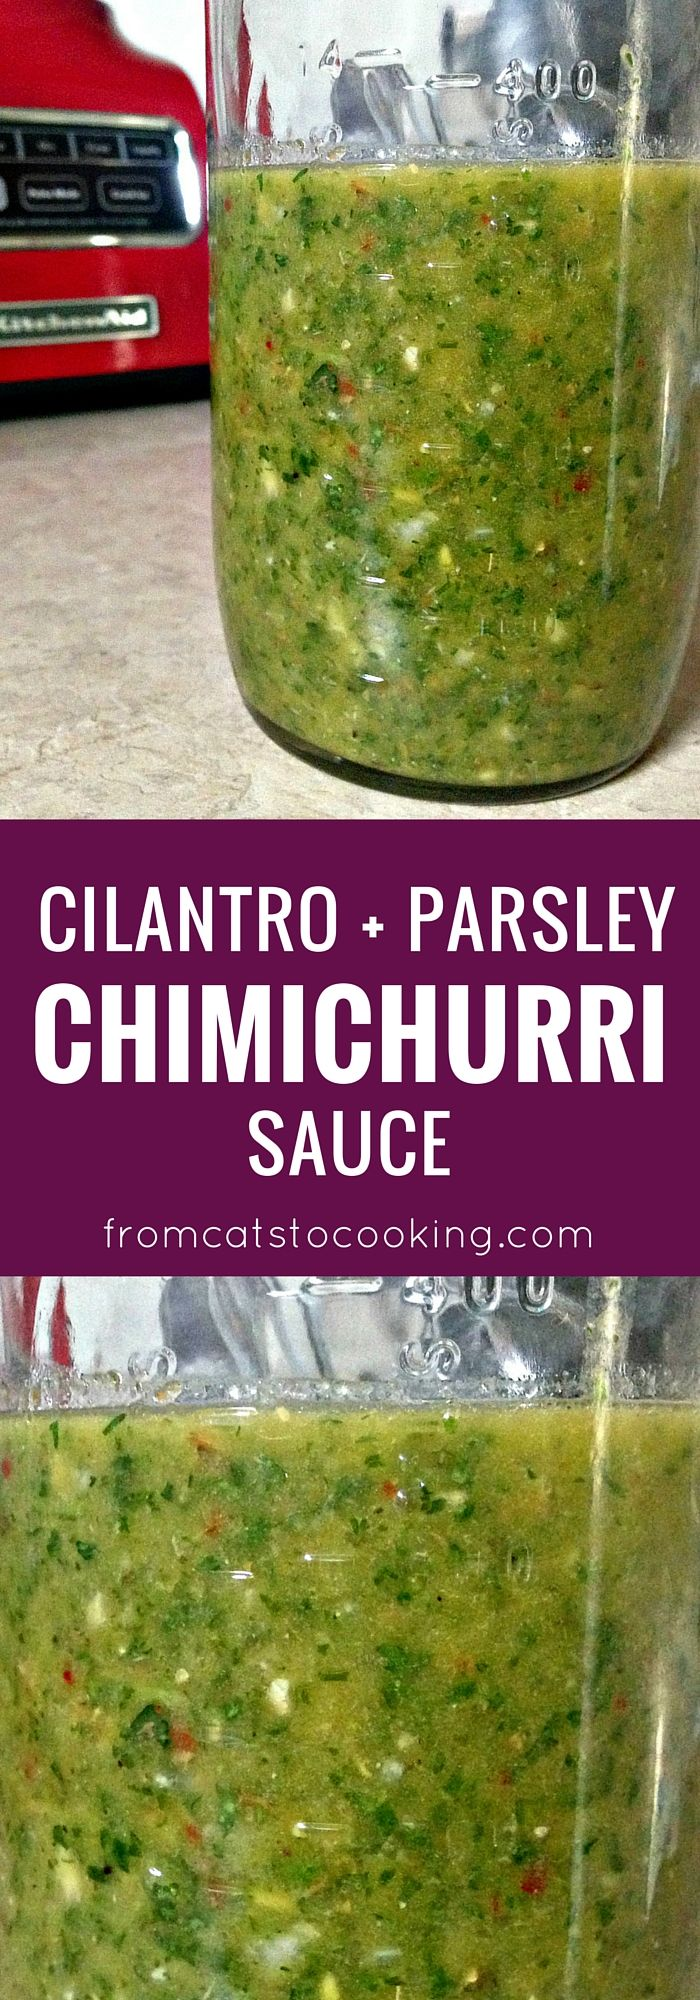 Cilantro and Parsley Chimichurri Sauce recipe. This sauce is perfect to serve on top of steak or seafood. Is also gluten free, paleo and vegetarian friendly. Click through for the recipe or pin this for later!